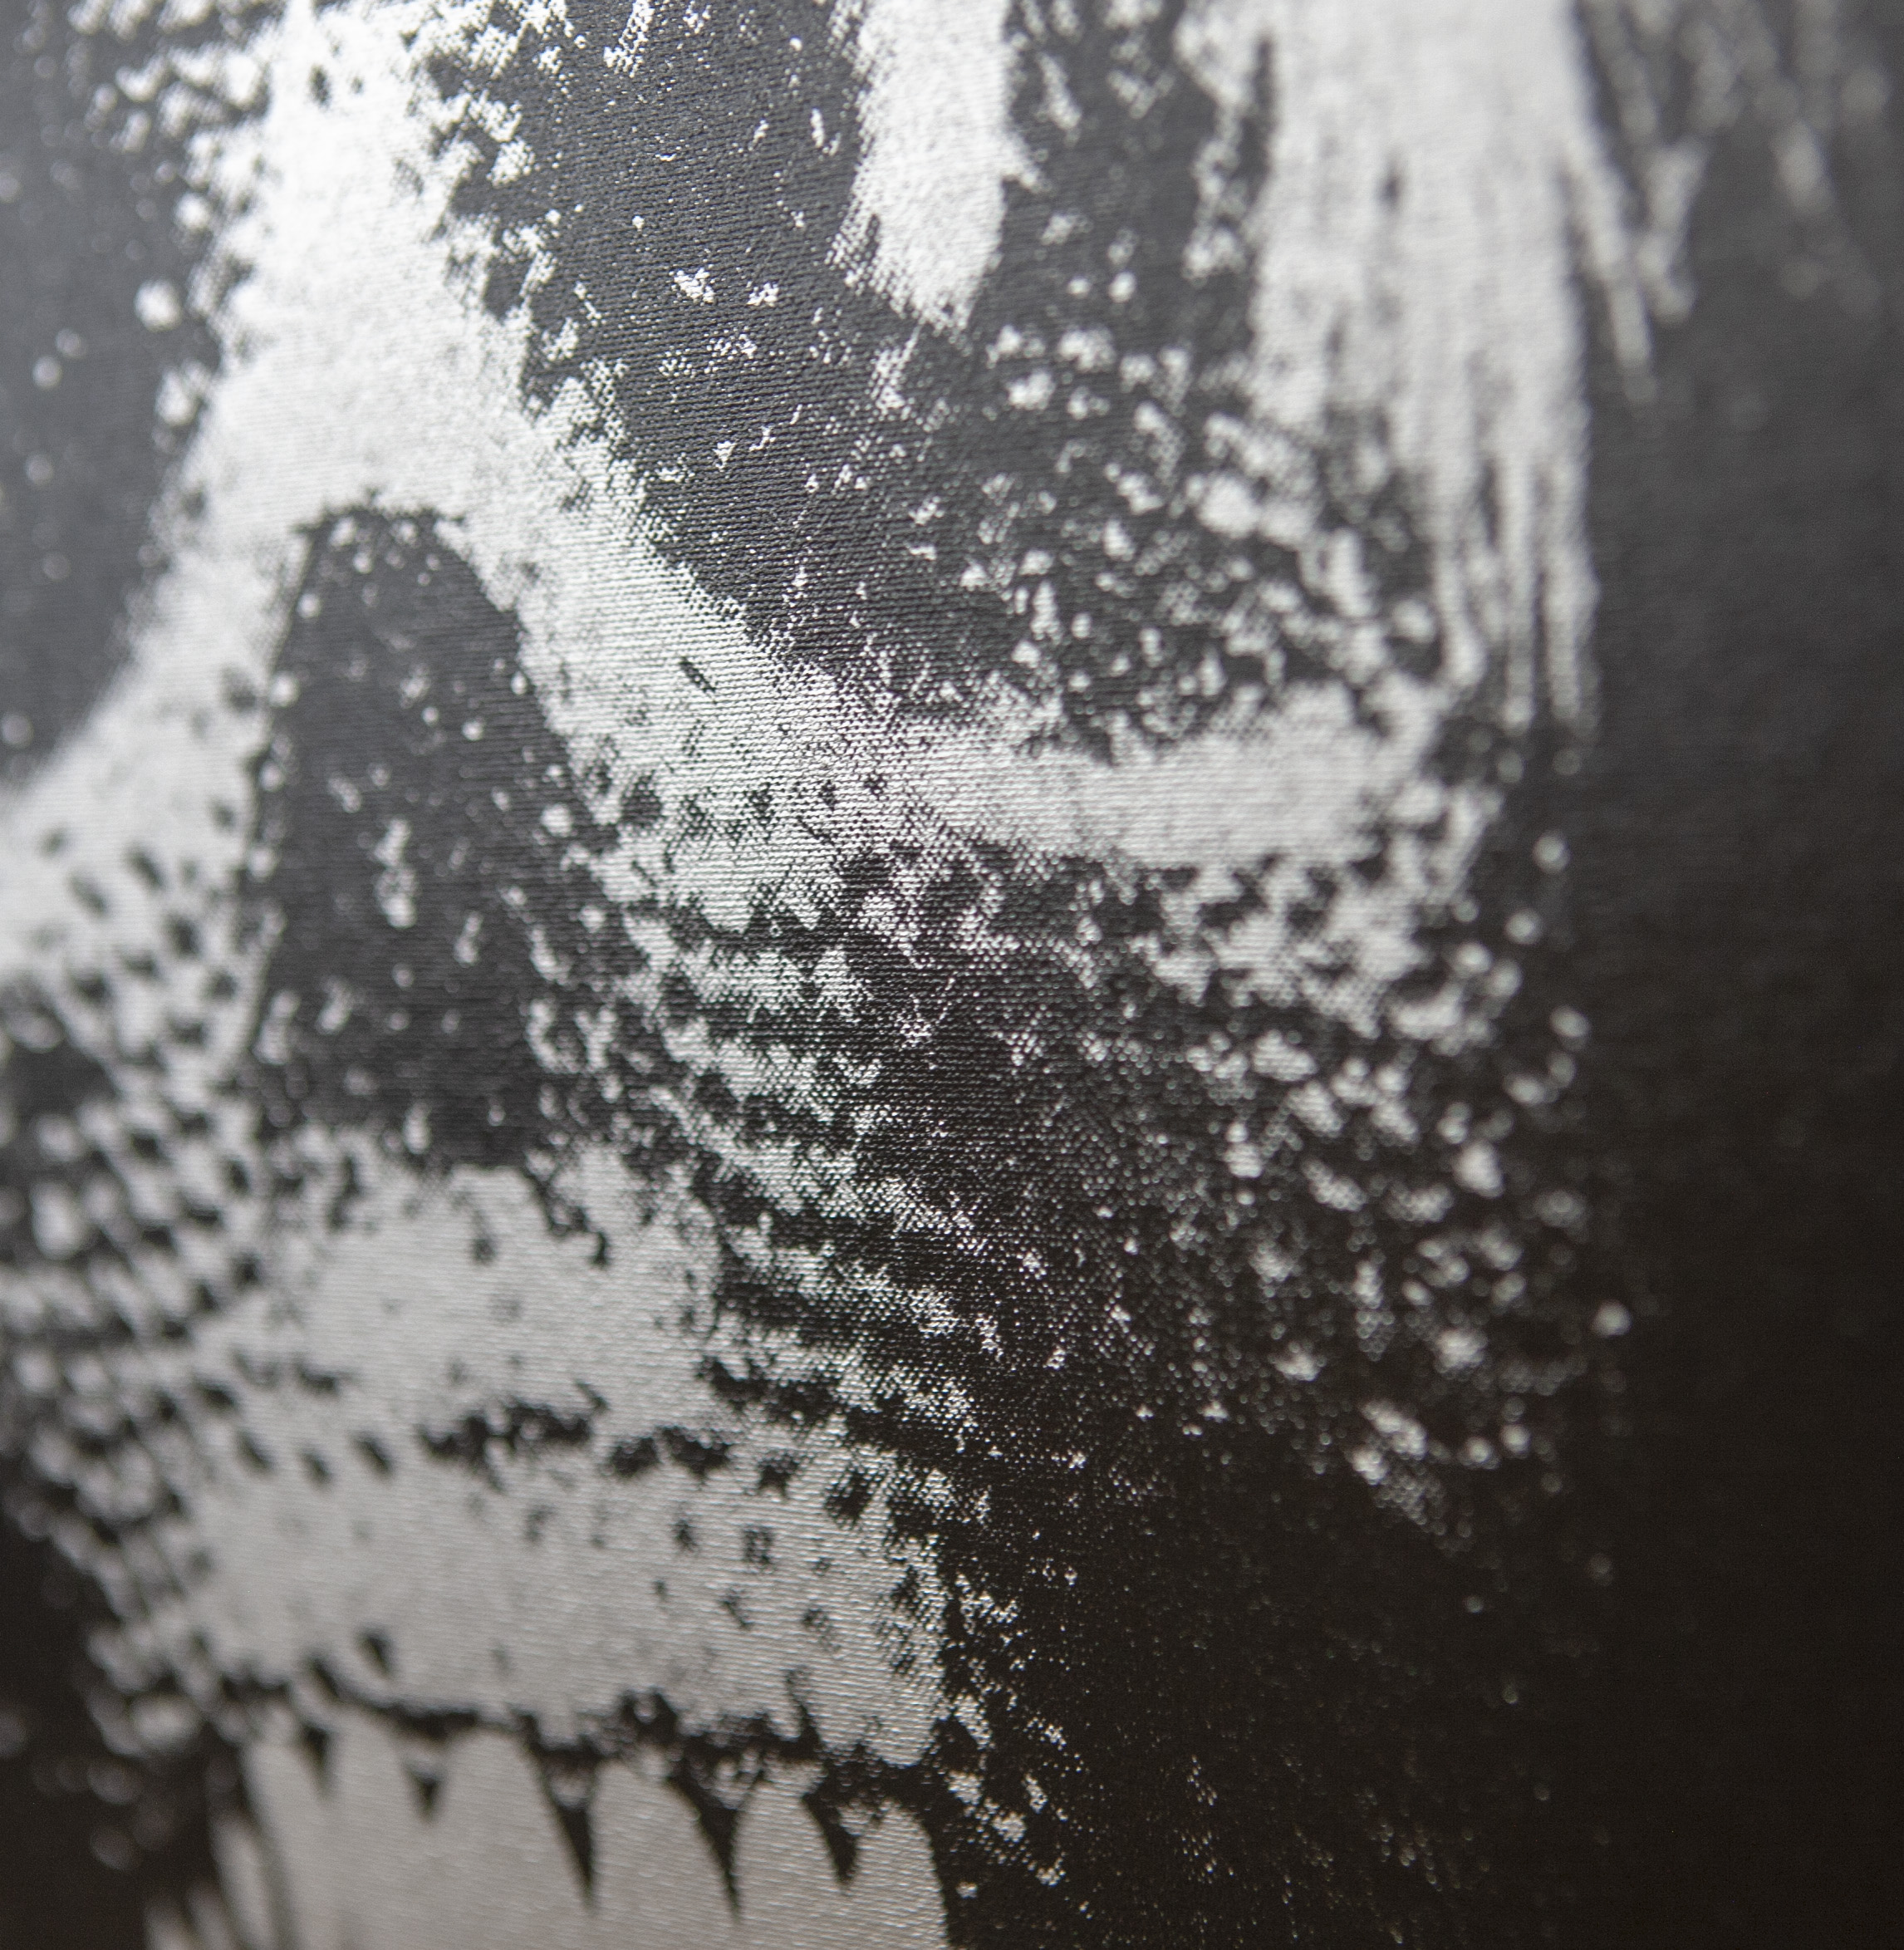 For the Love of Pop – Silver (detail)